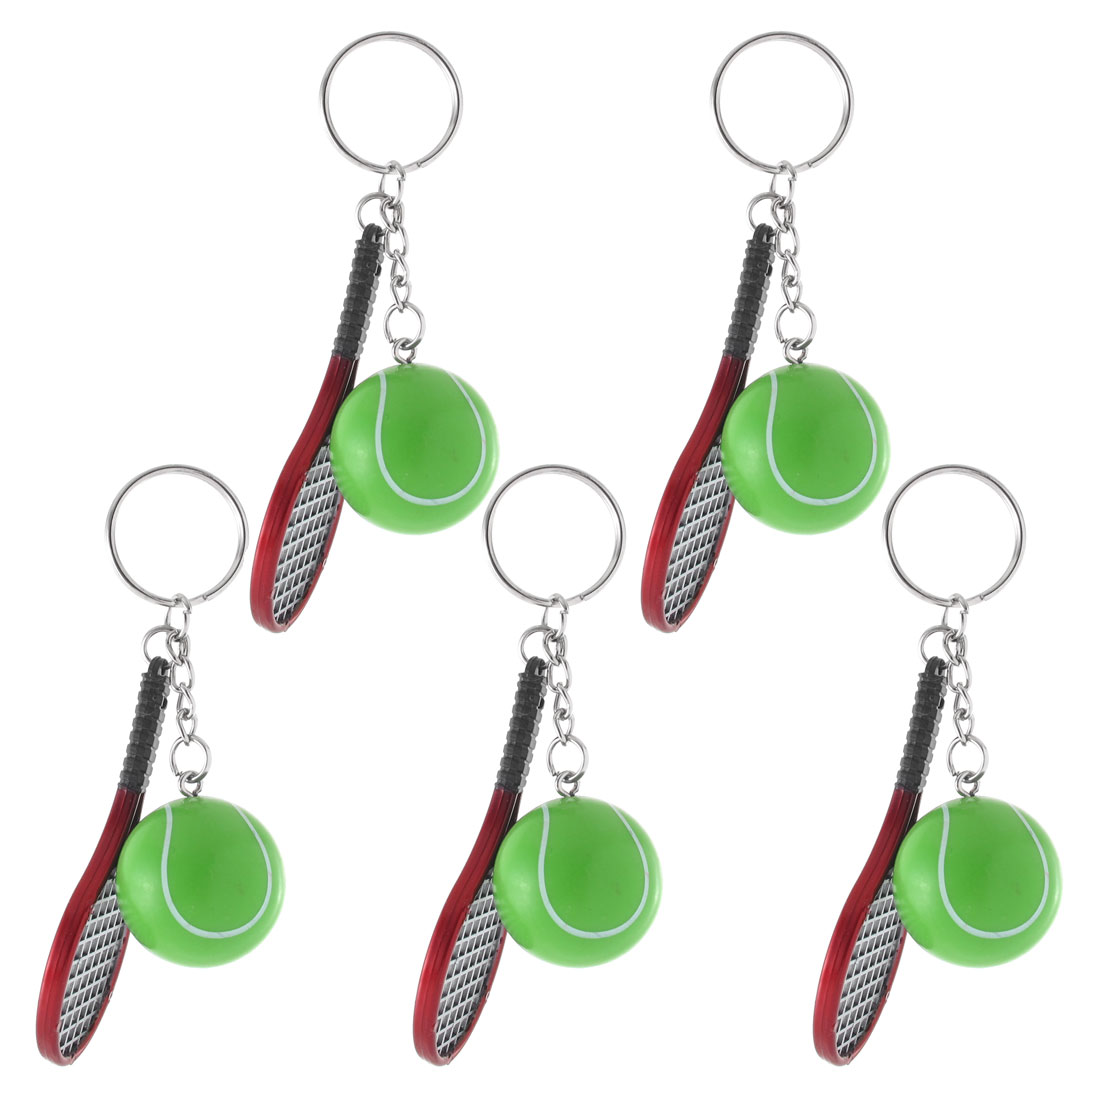 5PCS Green Red Plastic Tennis Ball Racket Pendant Keychain Key Ring Chain Purse Handbag Decoration